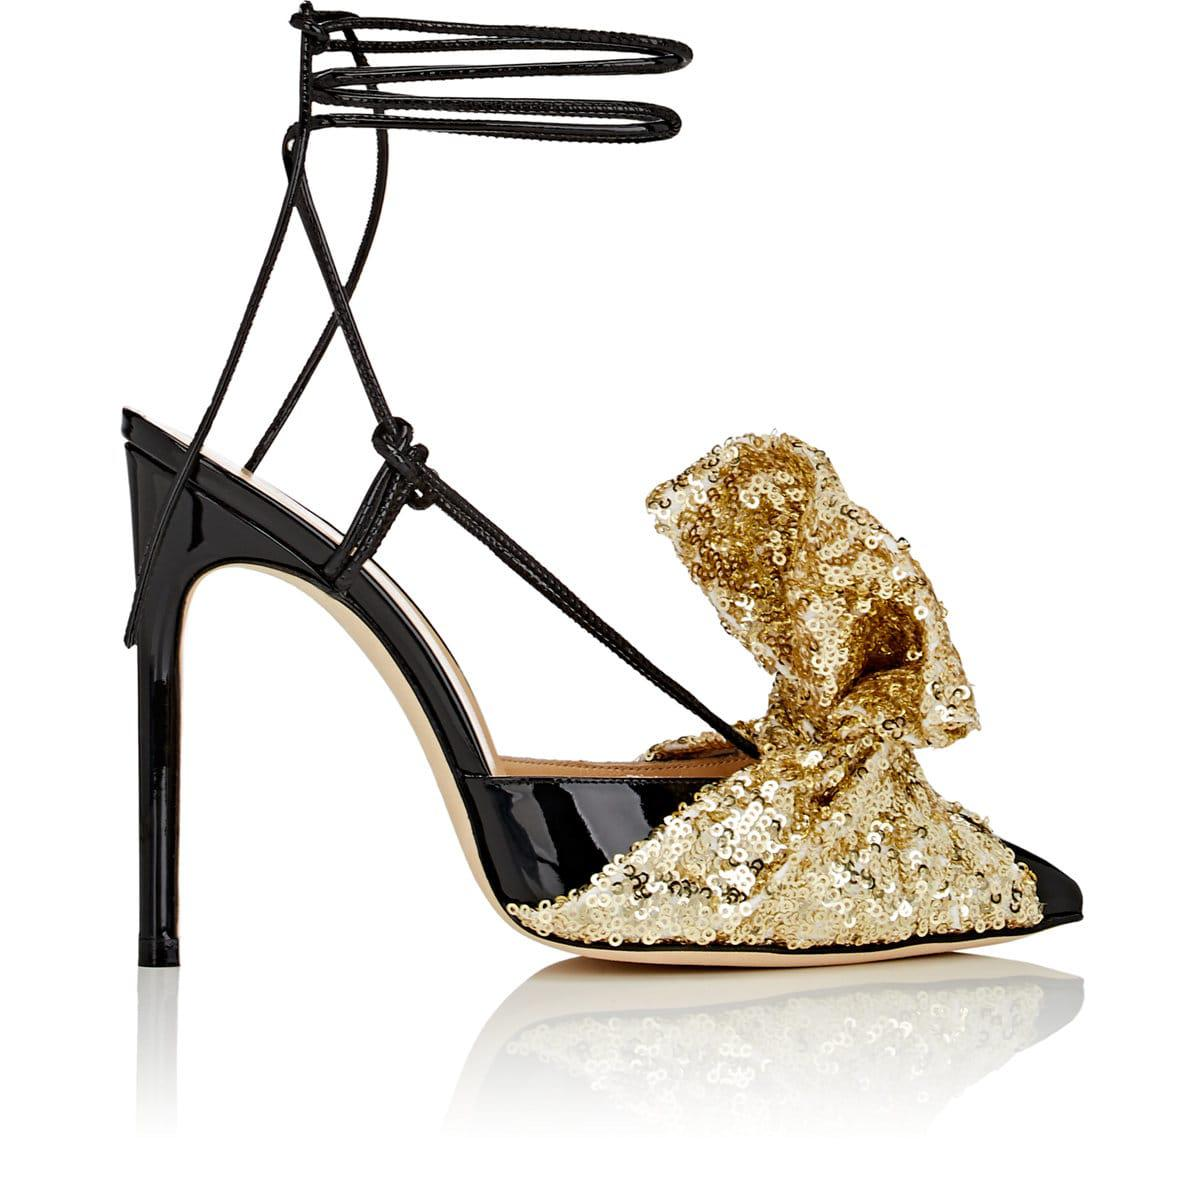 GIANNICO Bow-Embellished Patent Leather Sandals popular online LNgxK